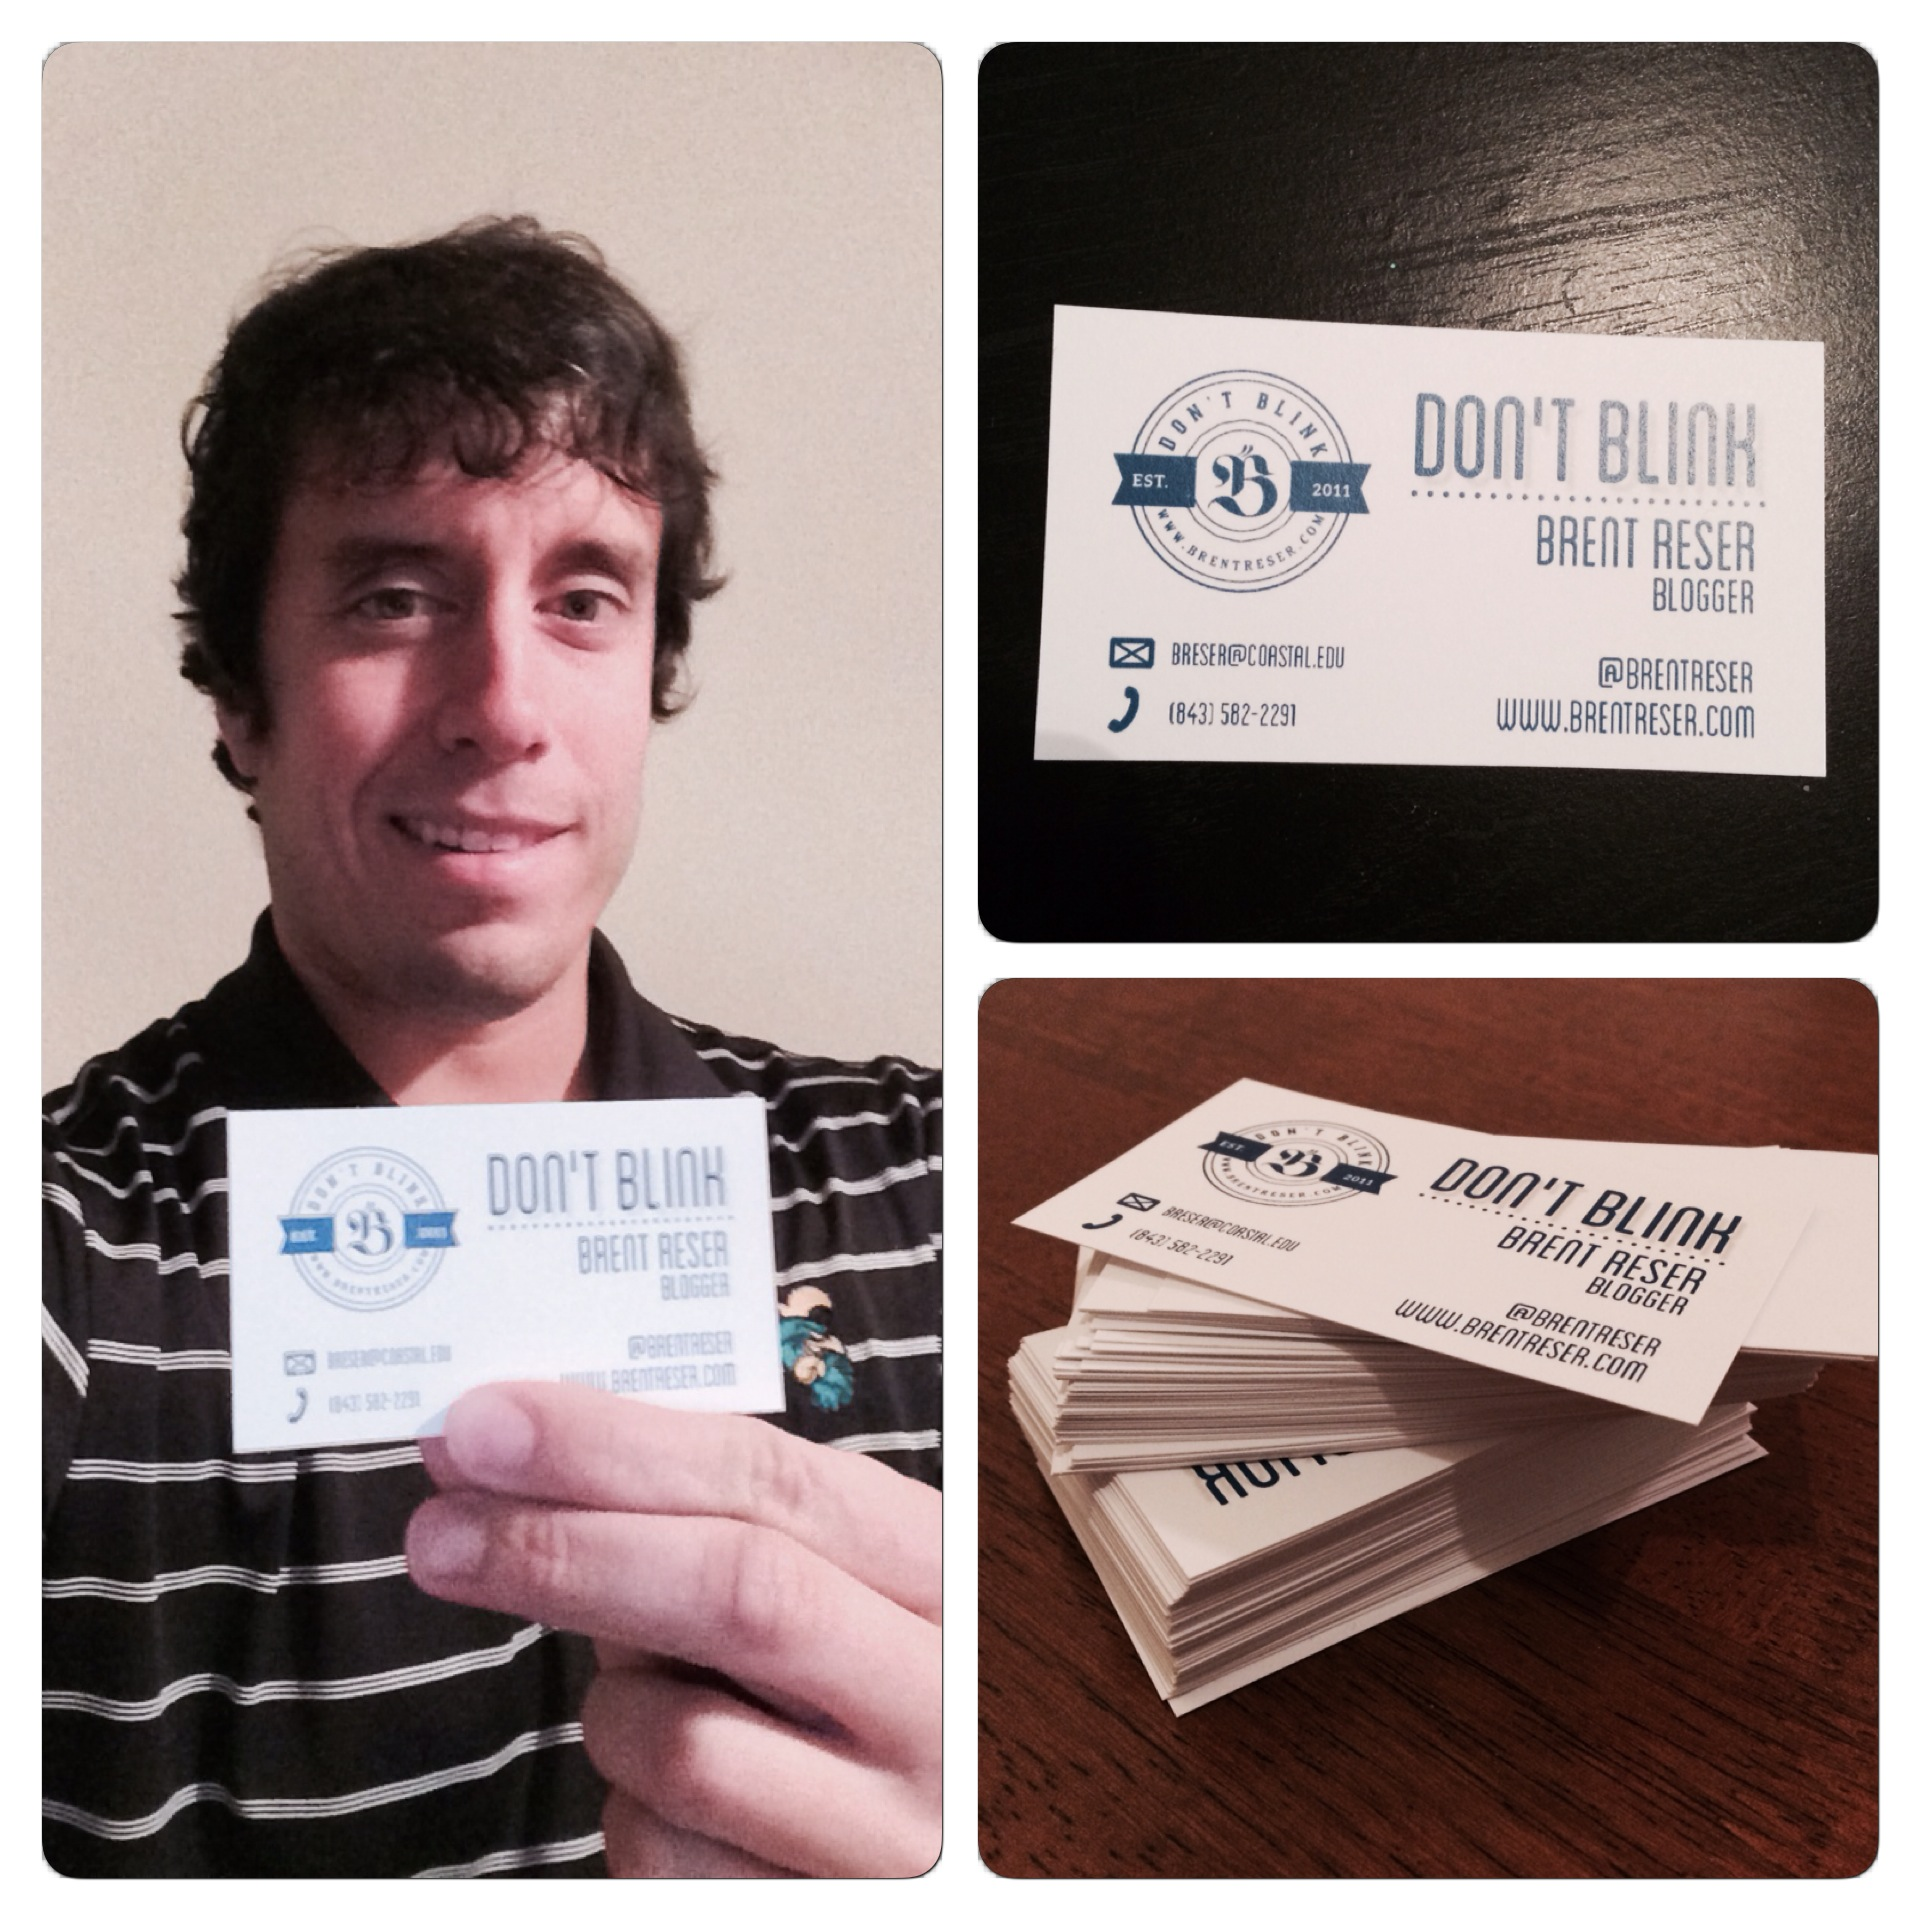 These are the business cards that a seller off of Fiverr created for me.